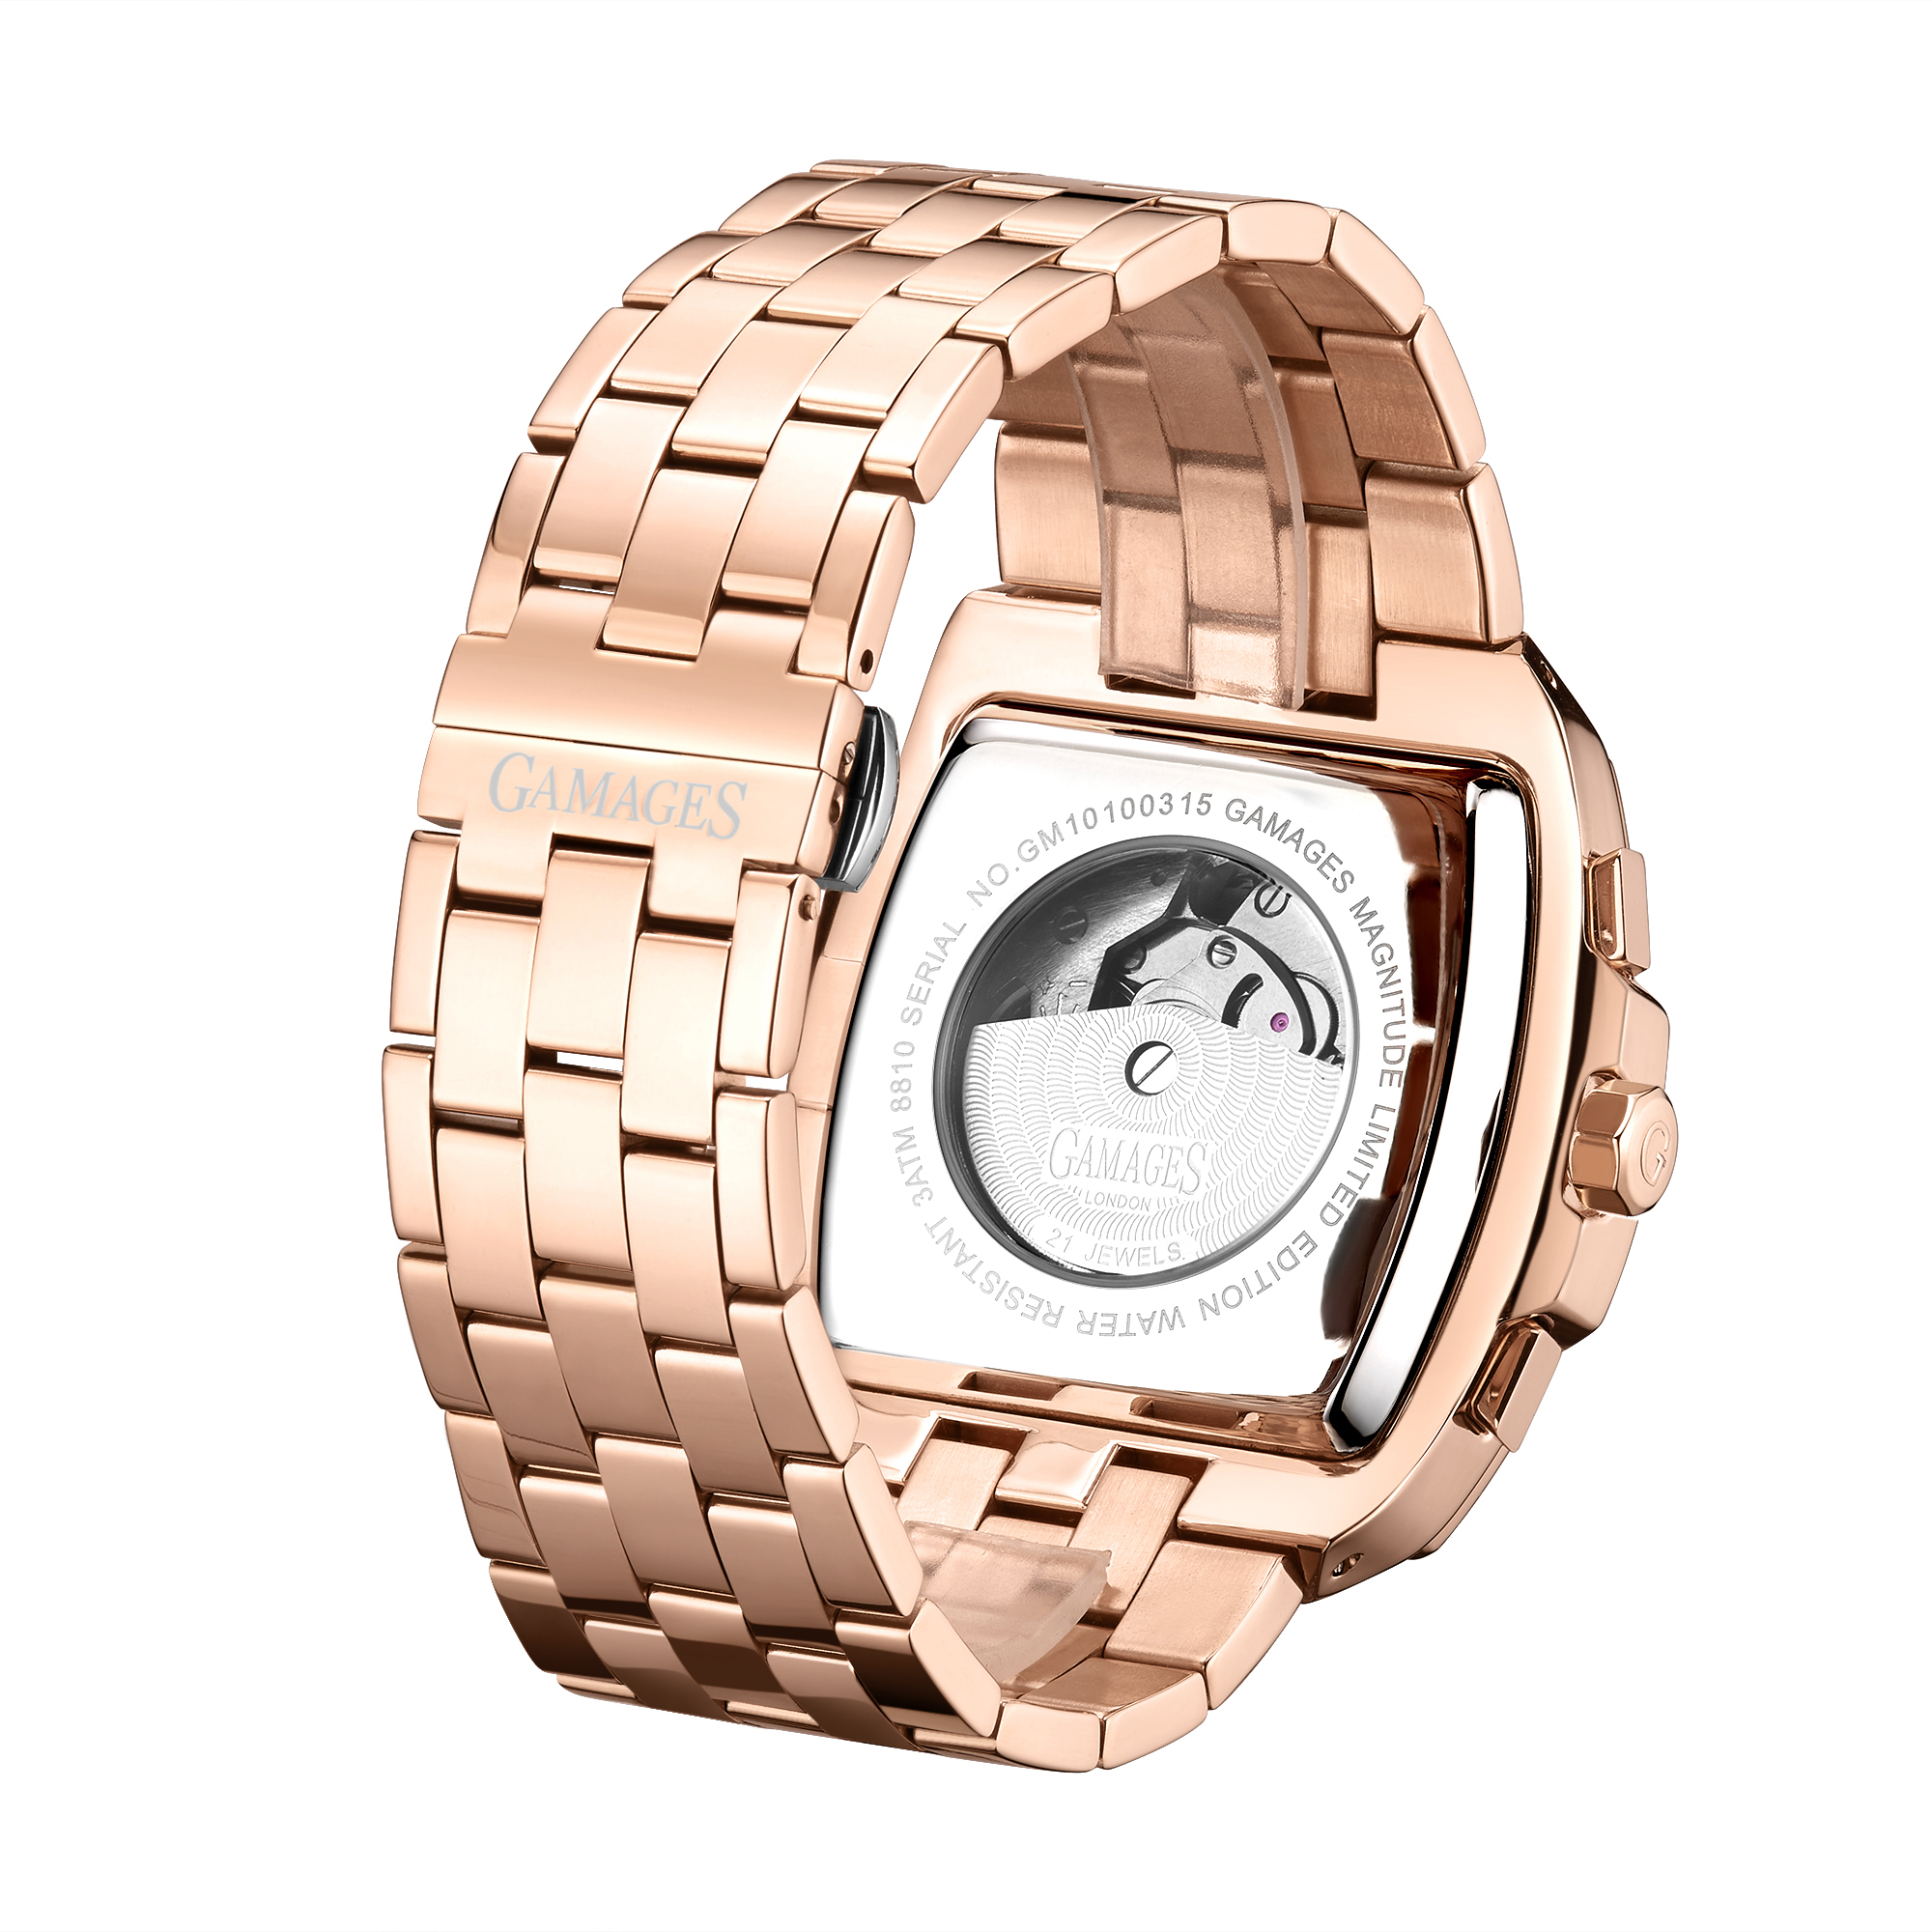 Limited Edition Hand Assembled GAMAGES Magnitude Automatic Rose – 5 Year Warranty & Free Delivery - Image 2 of 5